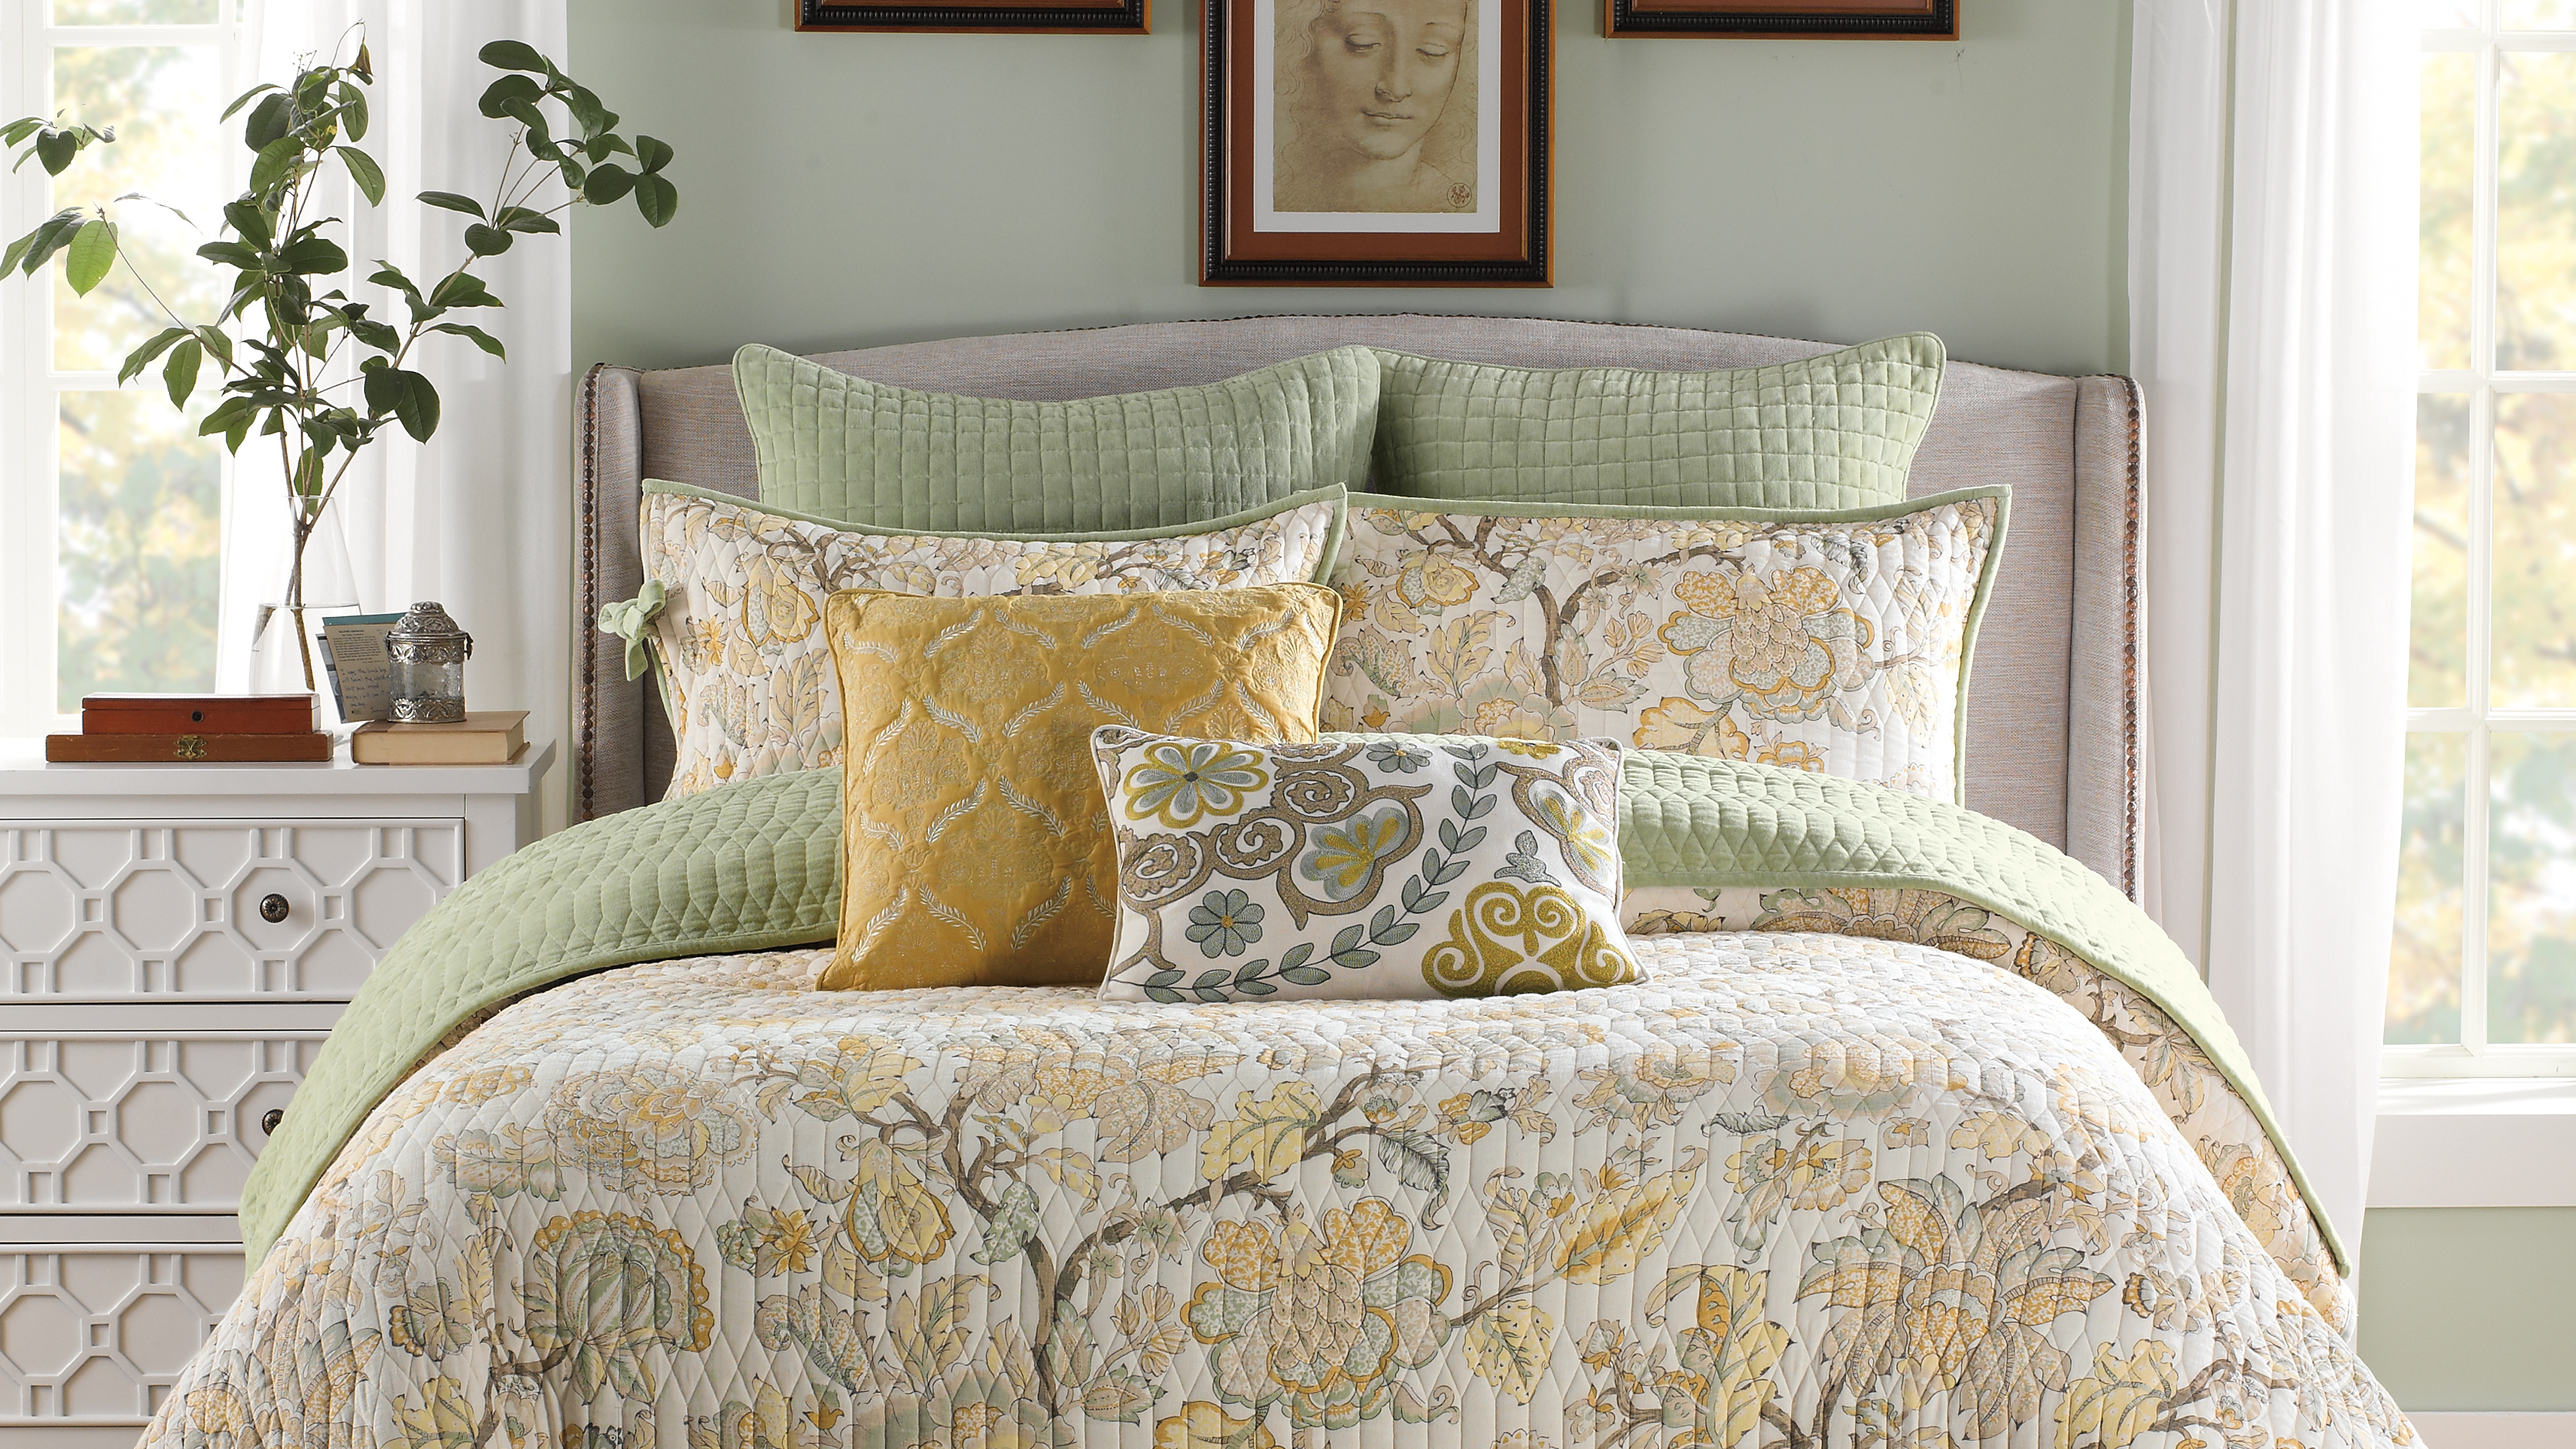 Uncategorized britannica home fashions tencel sheets - Britannica Home Fashions Inc Has Been A Leading Force In The Home Textile Industry For Over 40 Years Headquartered In The Heart Of New York City S